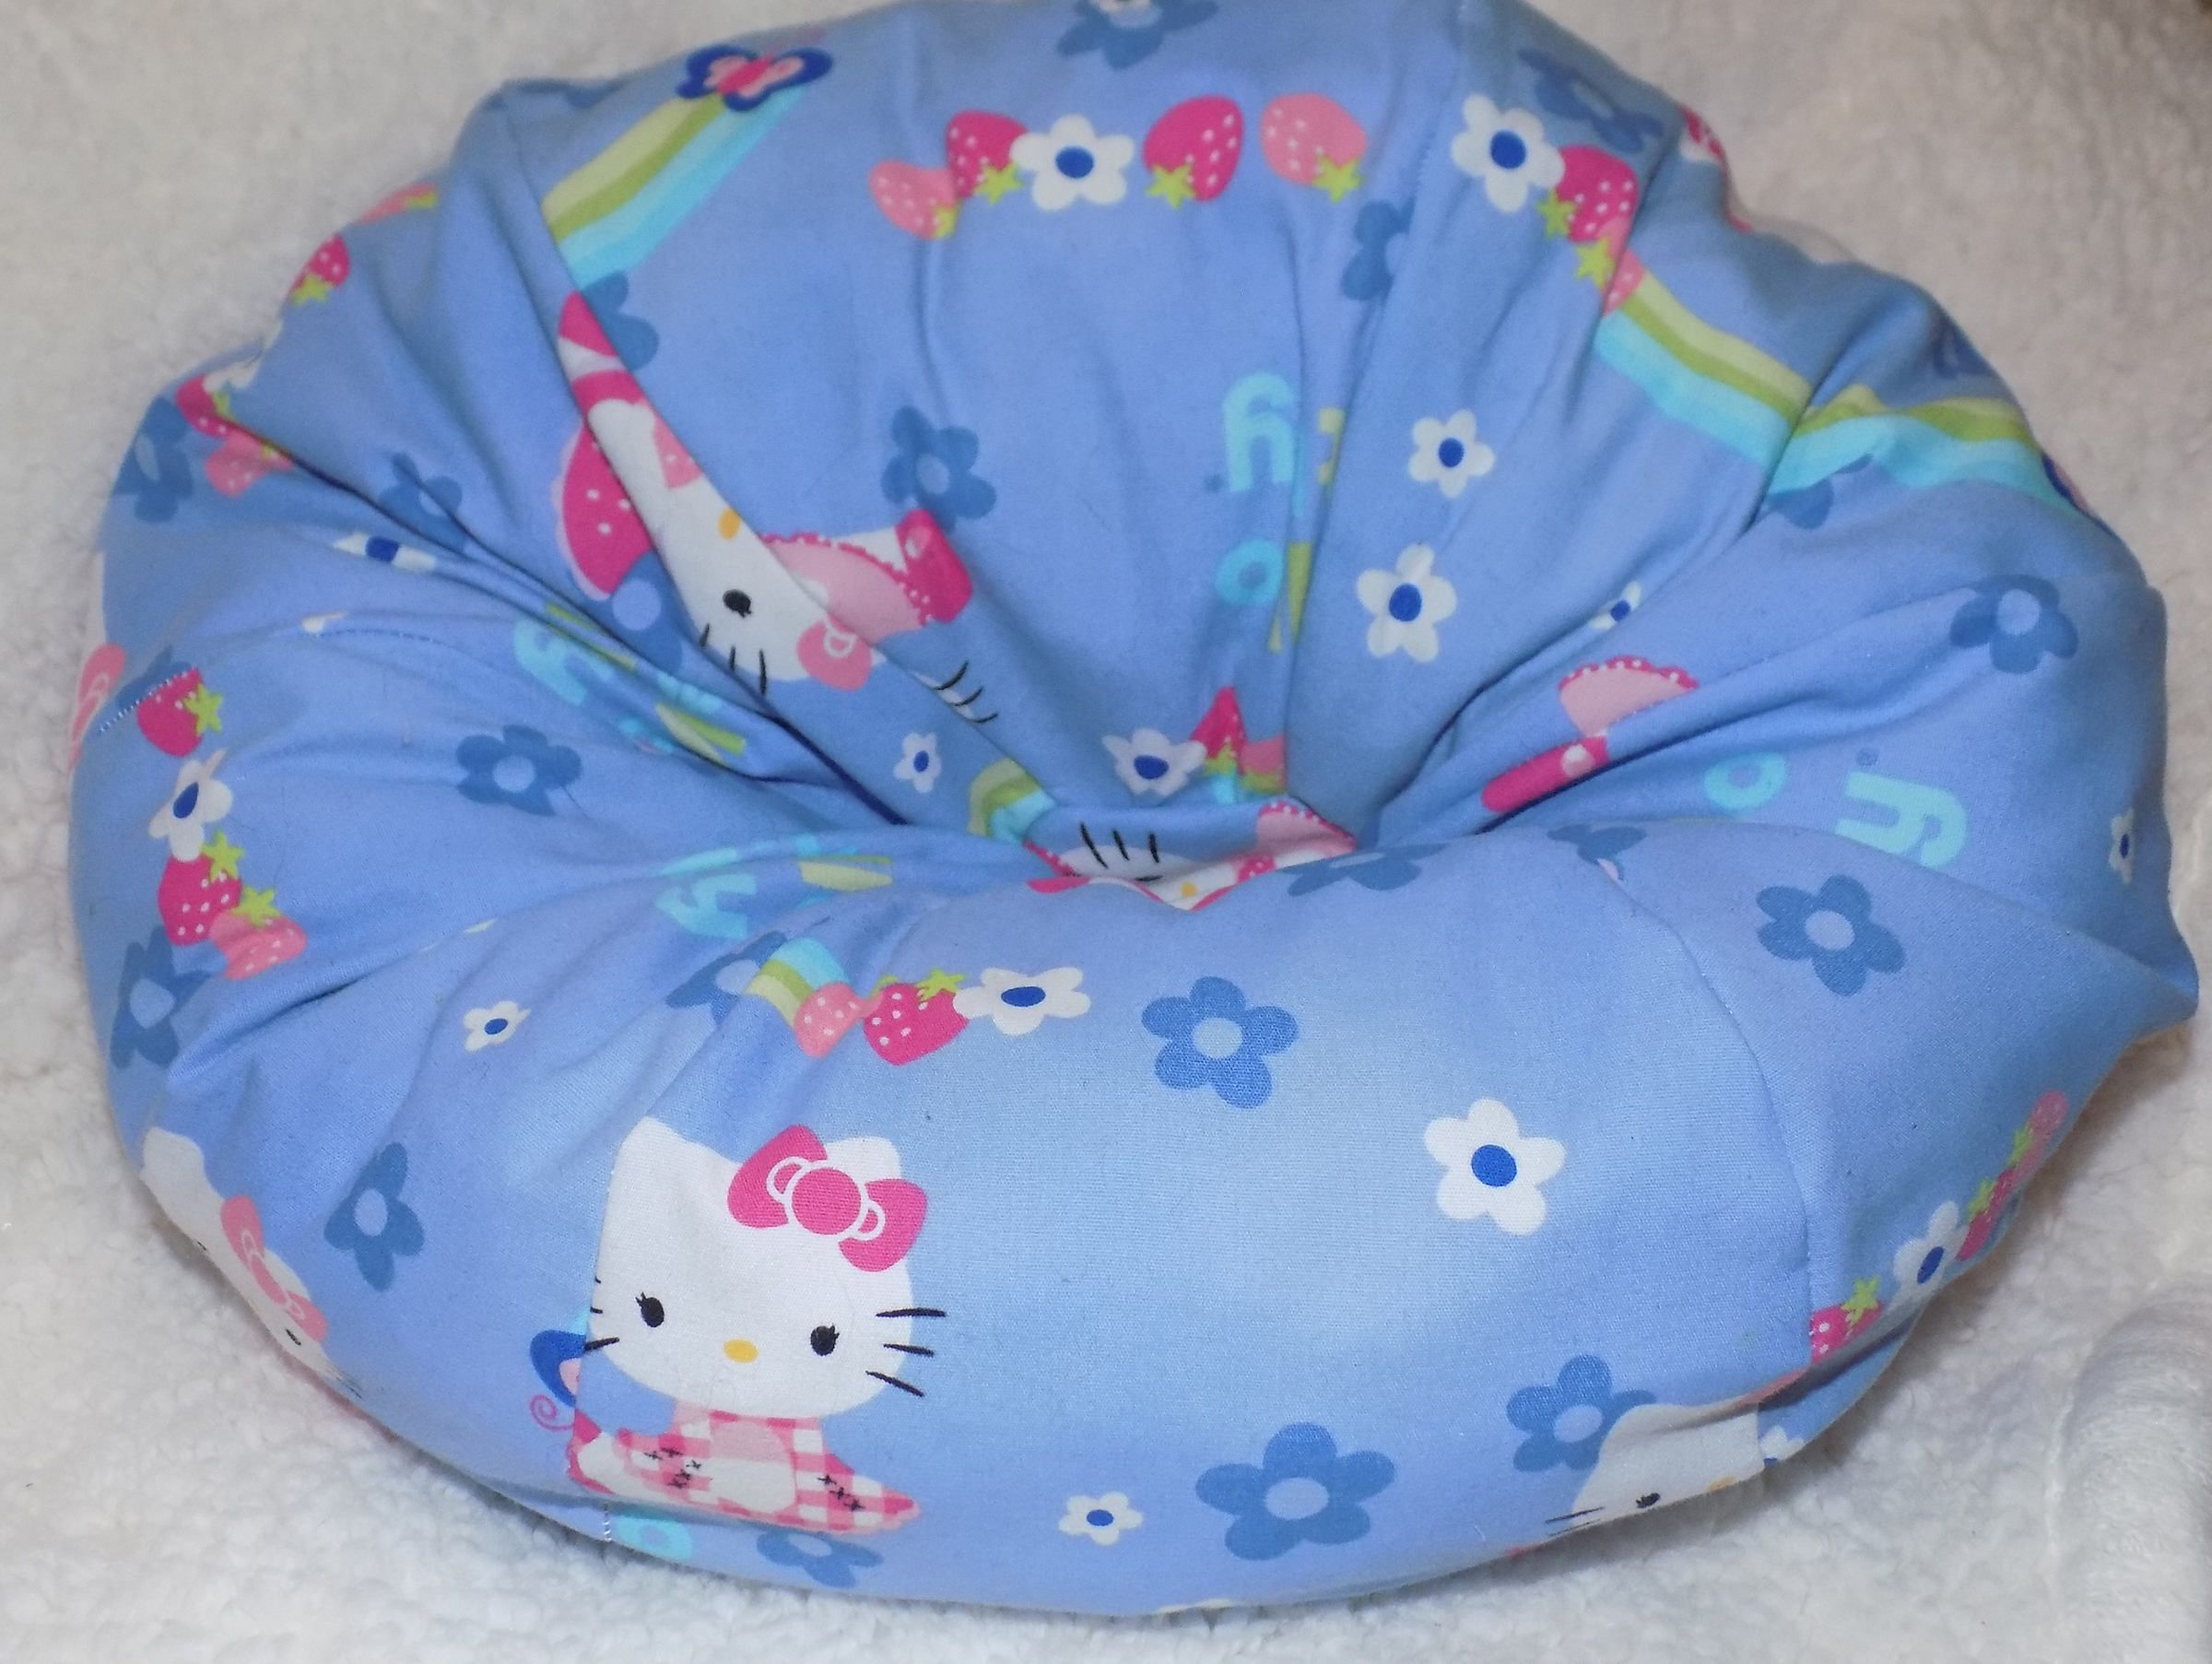 American Girl Bean Bag Chair Handcrafted From Adorable Hello Kitty